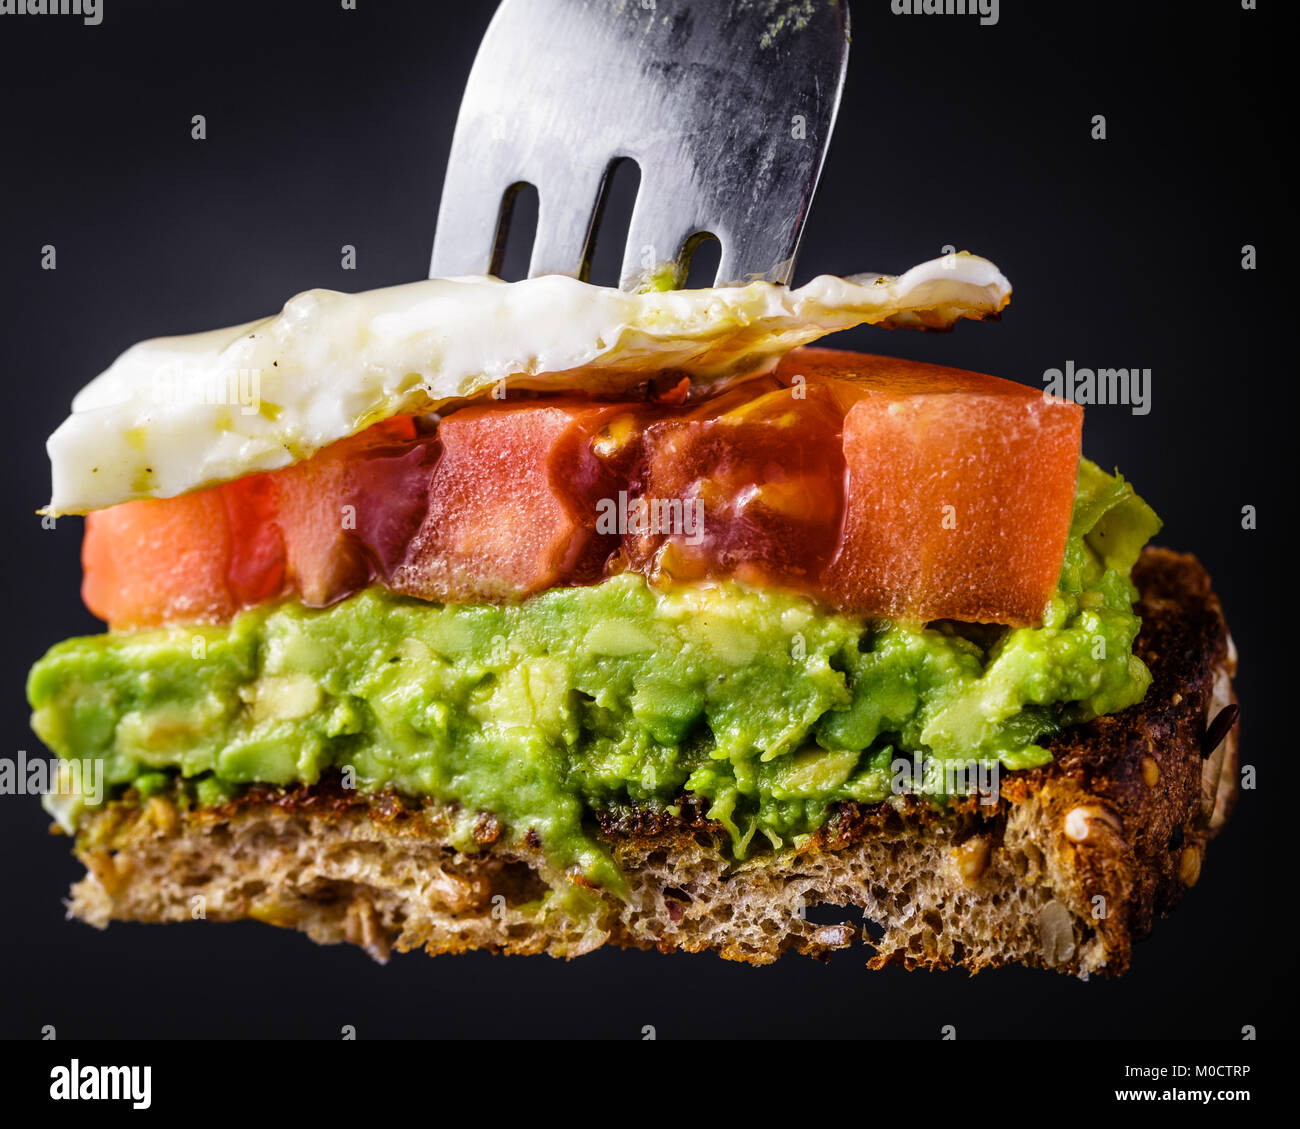 Bite sized piece of avocado toast with tomato and a fried egg on a fork.  Isolated on a black background - Stock Image